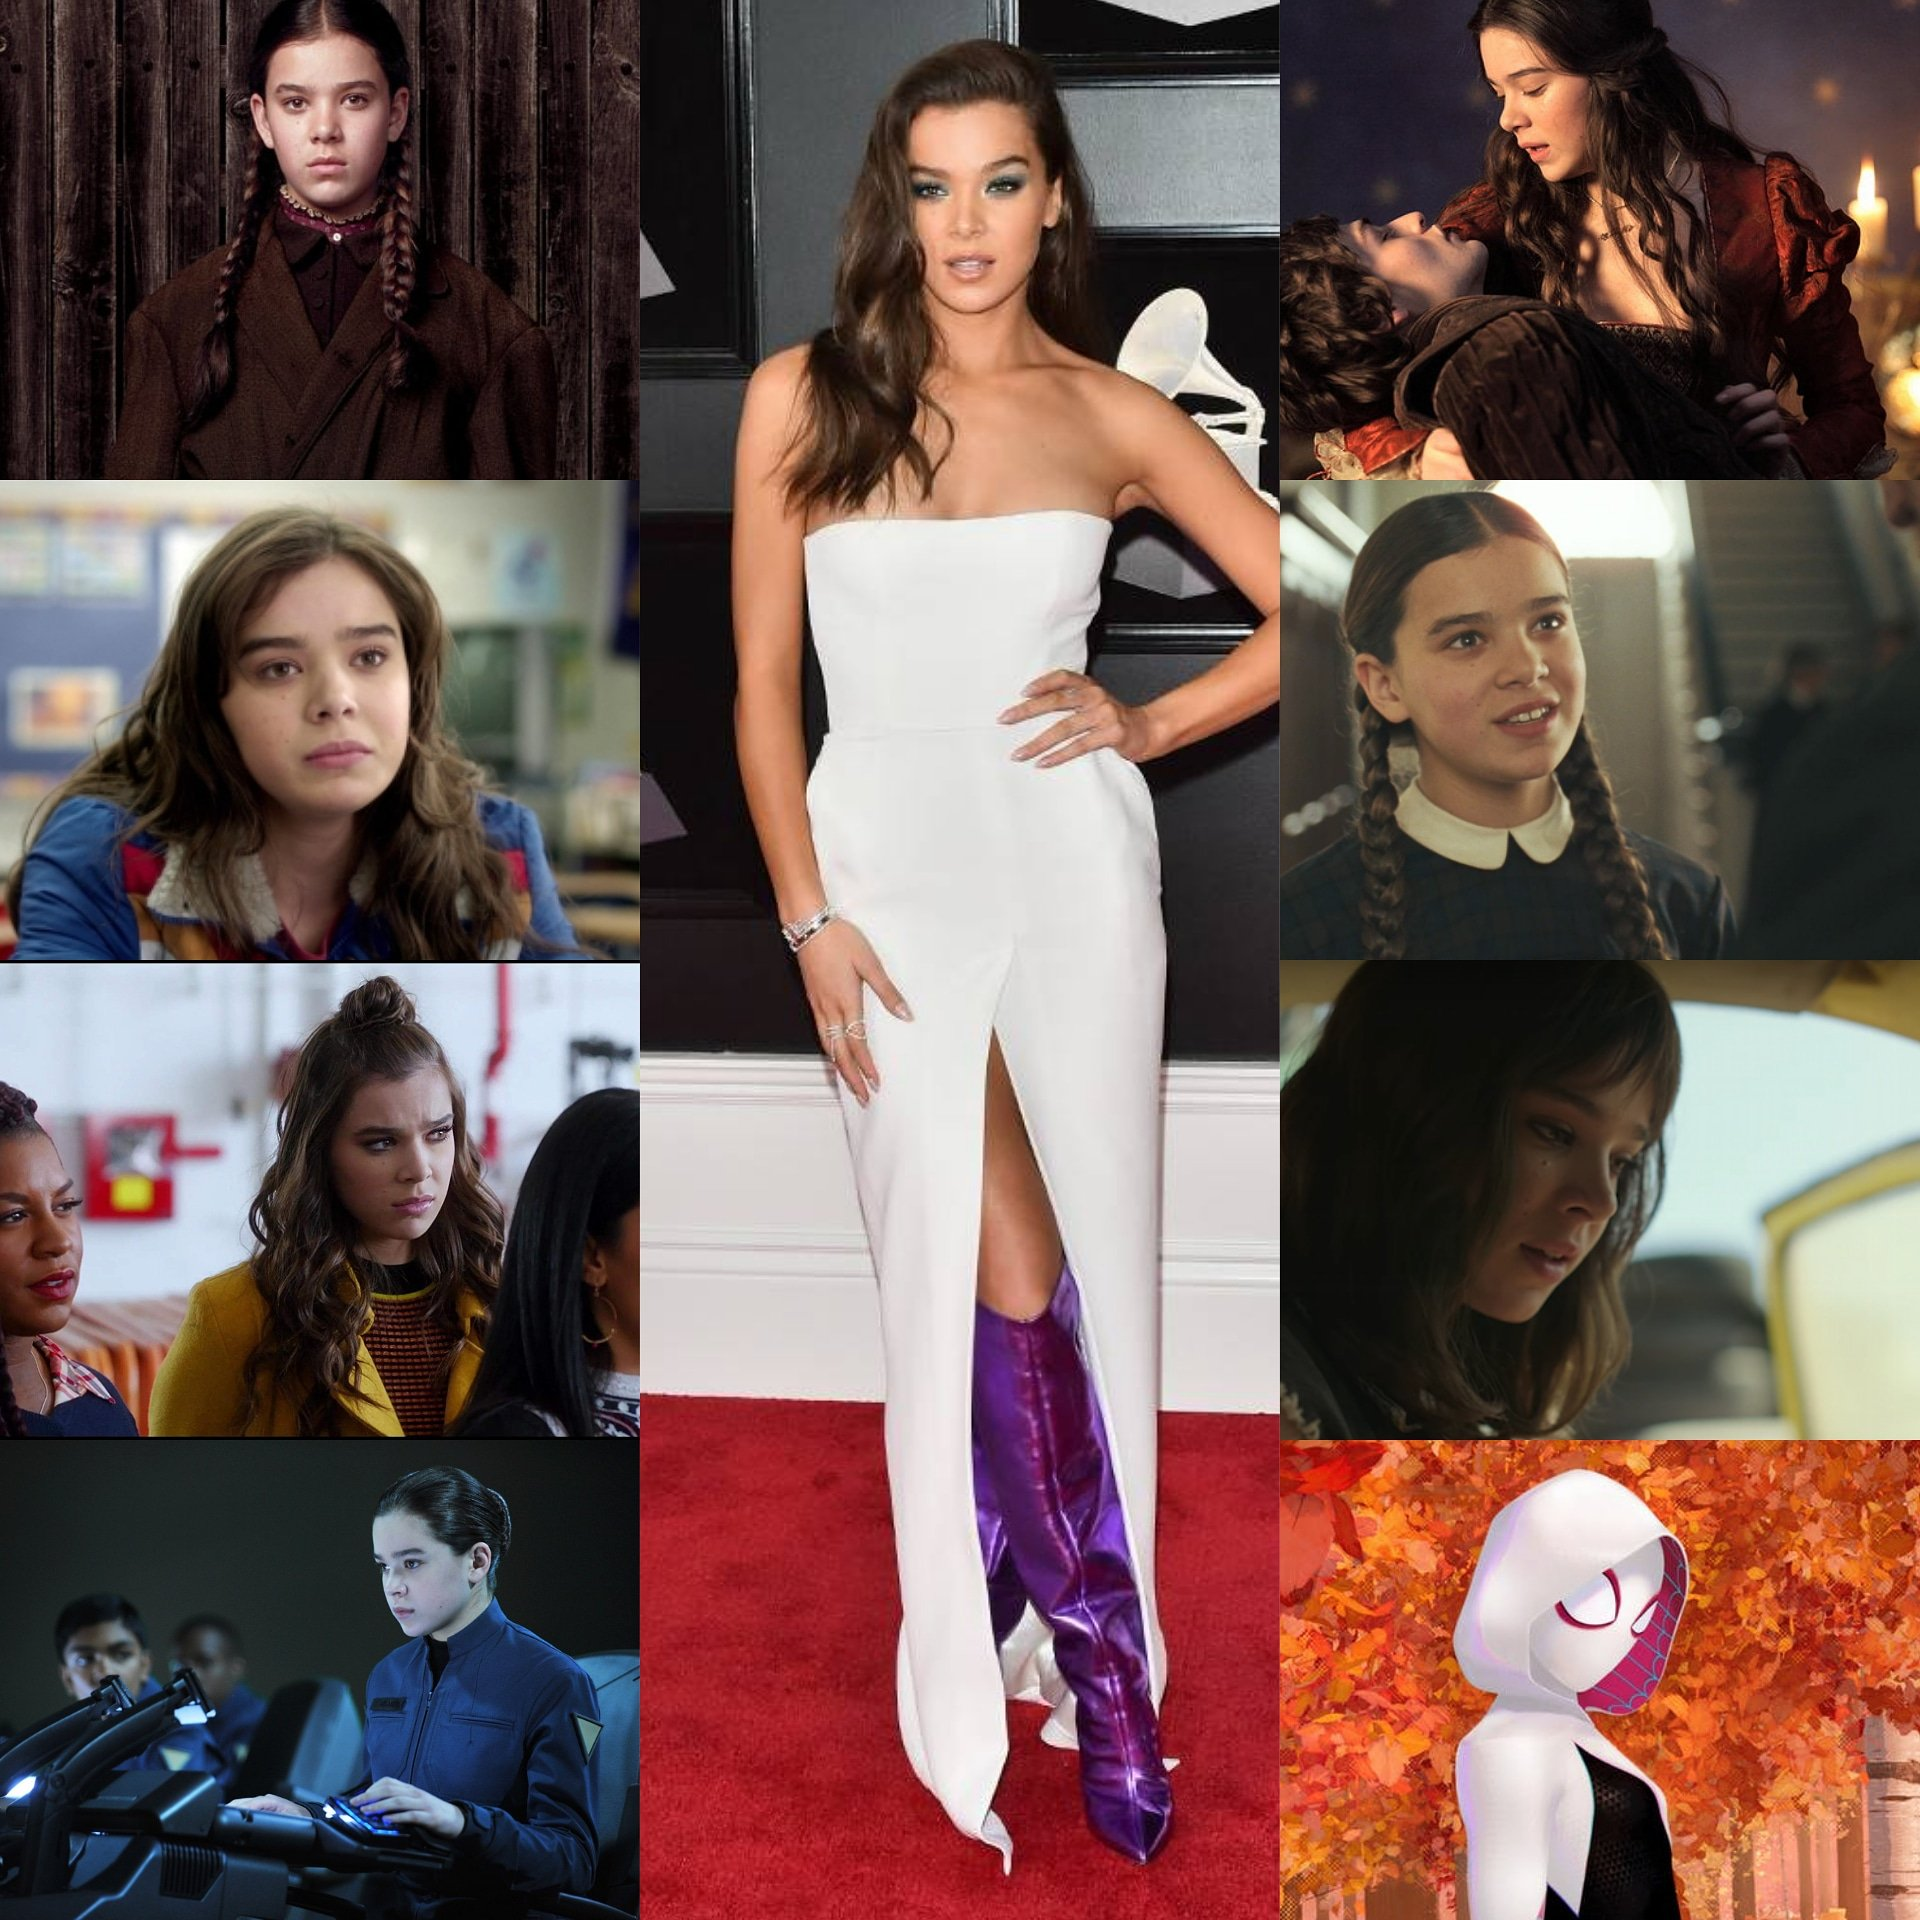 Happy 22nd birthday Hailee Steinfeld!